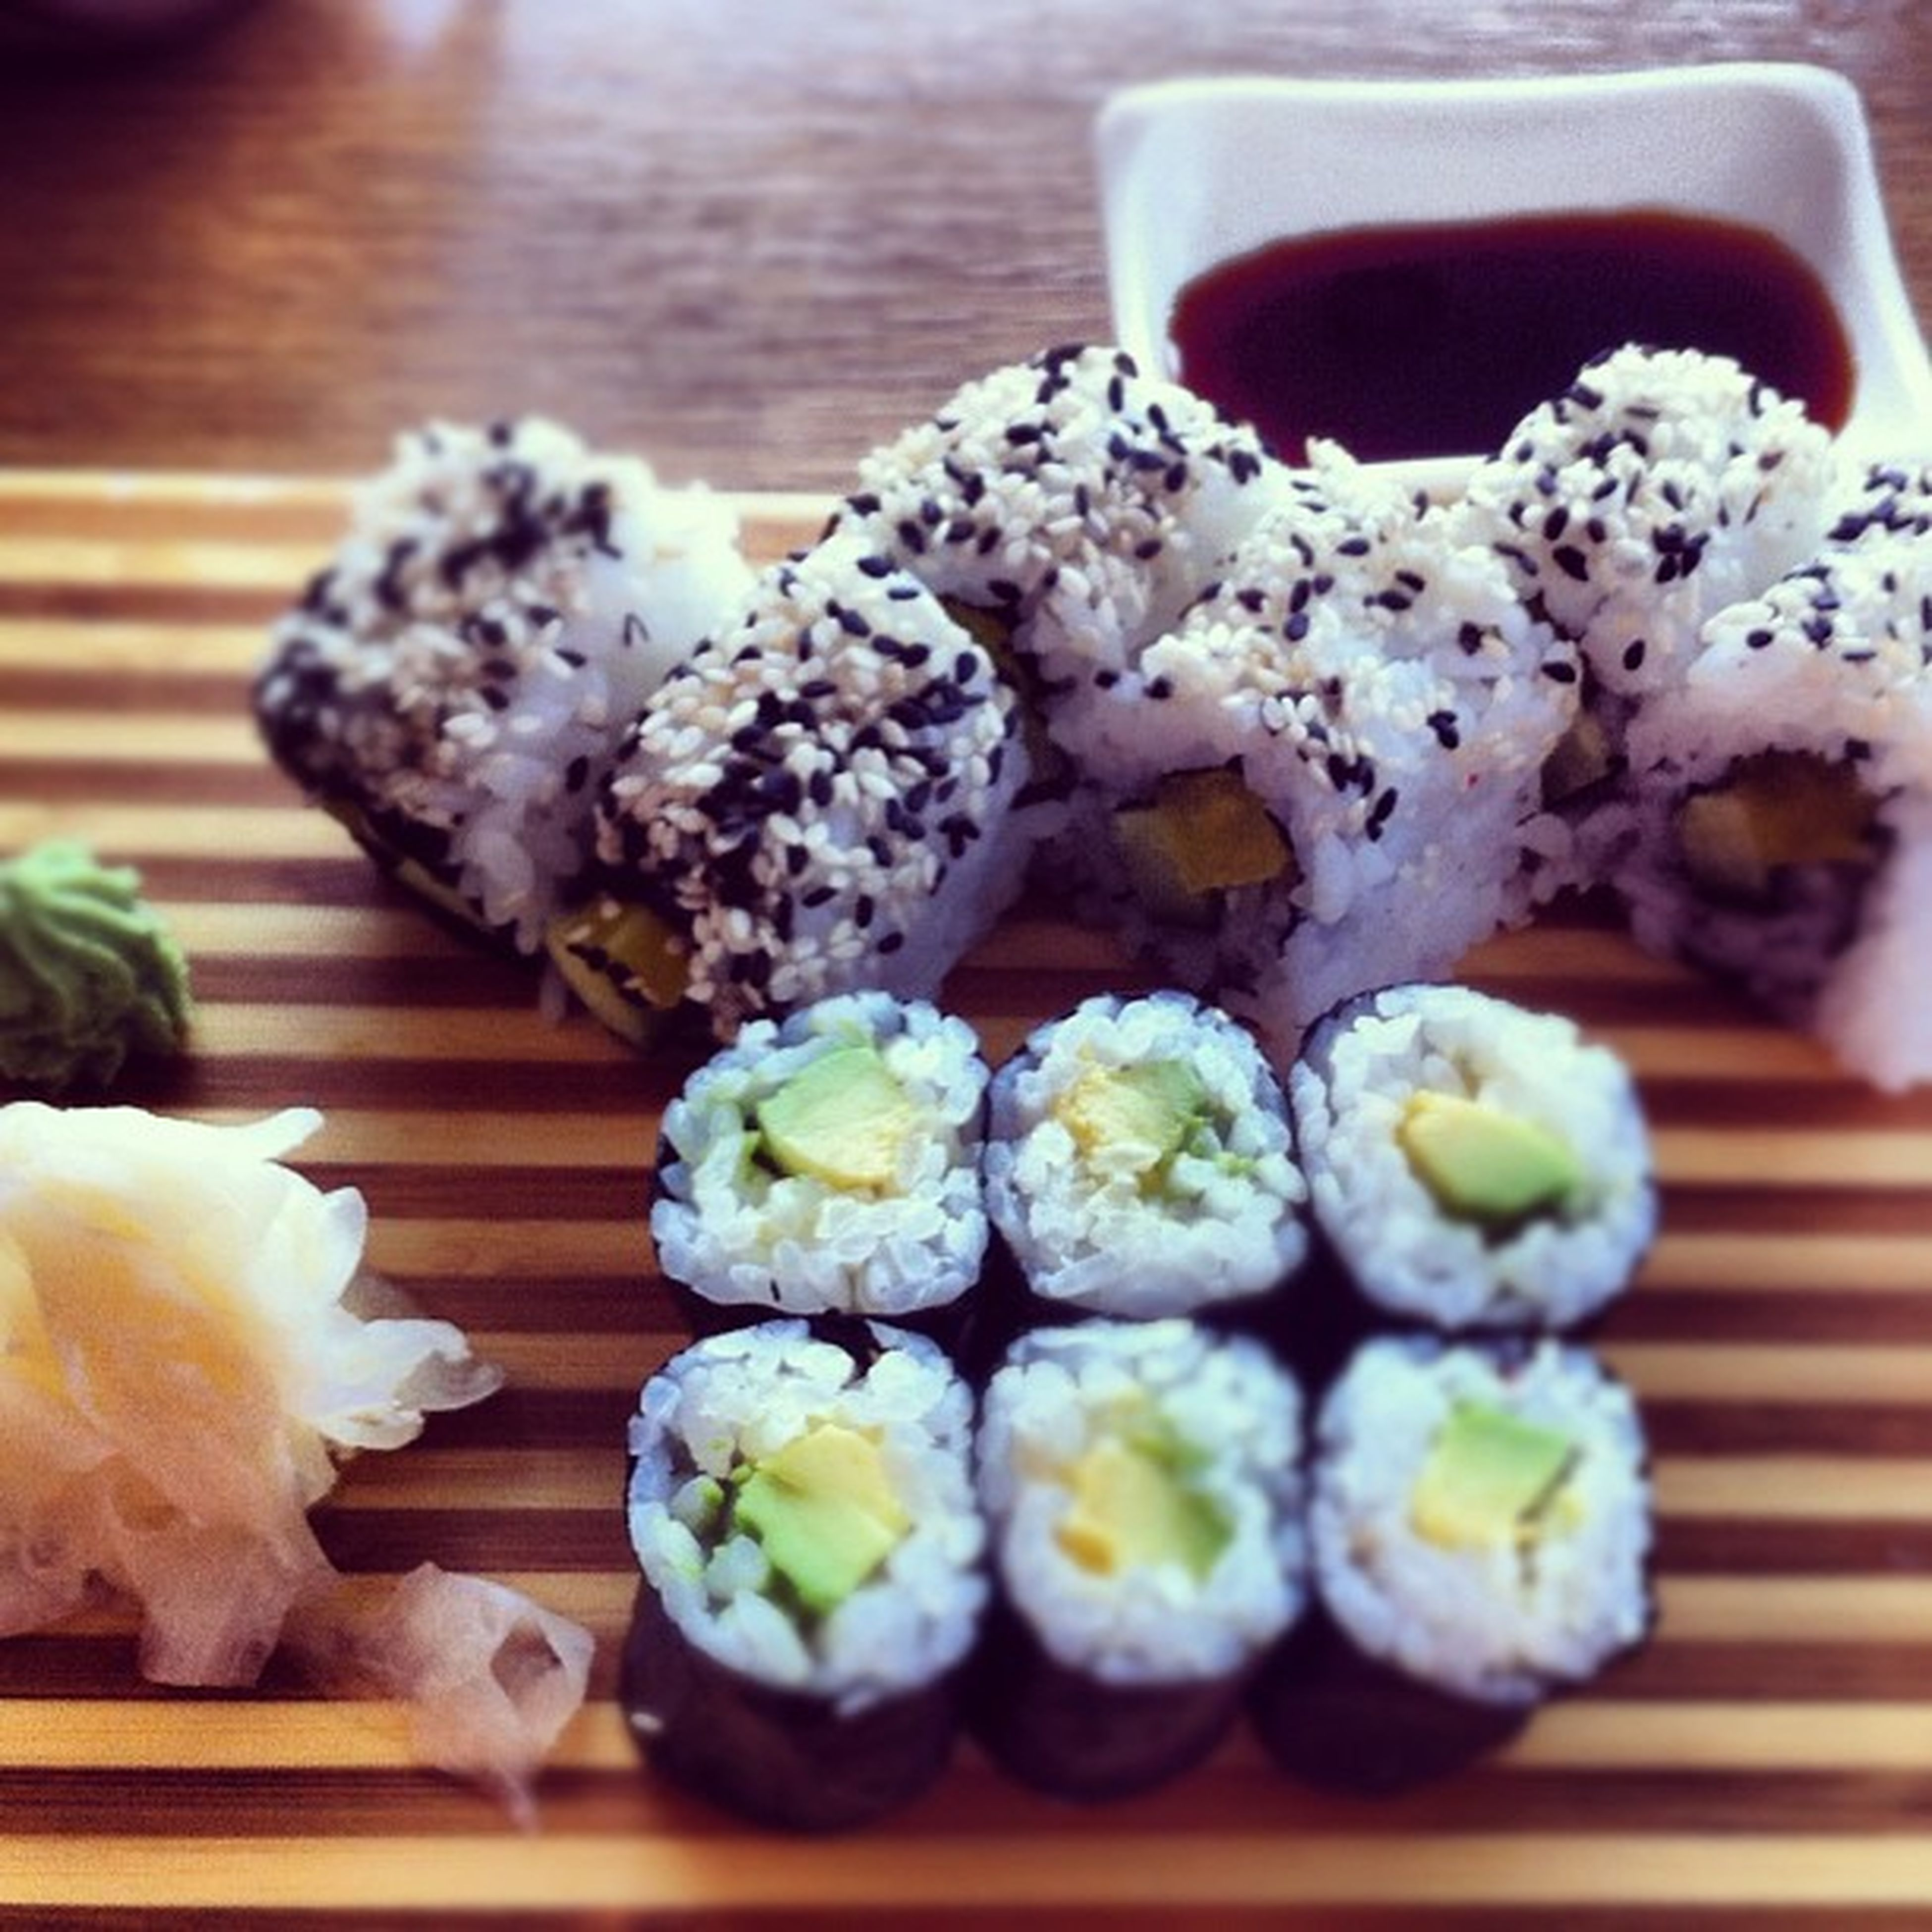 food and drink, food, freshness, indoors, ready-to-eat, still life, indulgence, close-up, sweet food, healthy eating, table, meal, plate, variation, sushi, temptation, selective focus, dessert, in a row